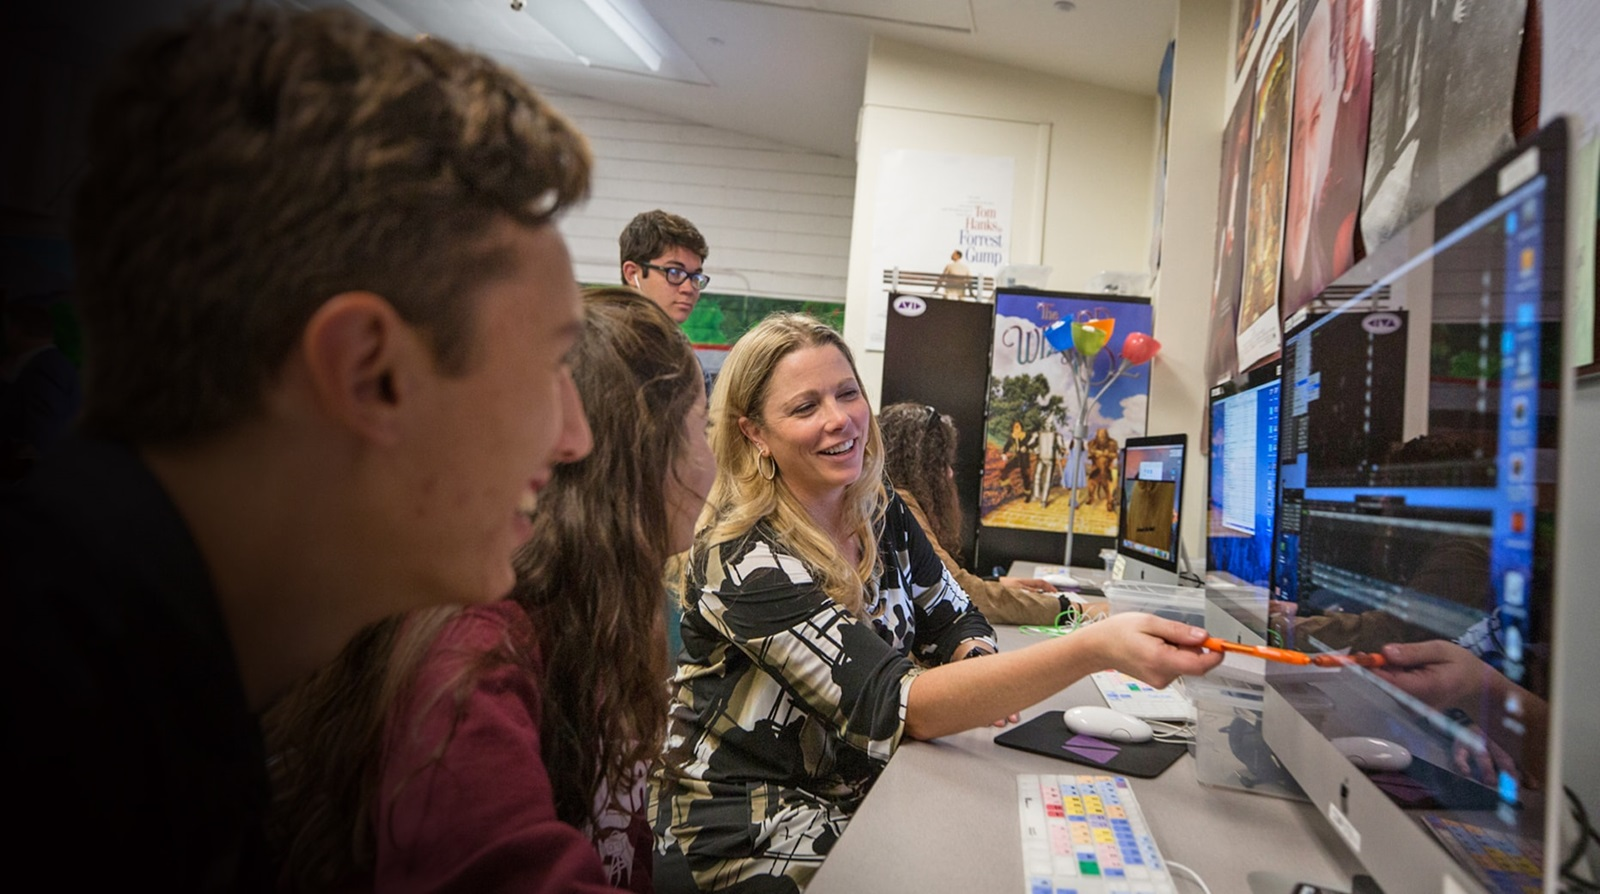 Claremont High School using Media Composer video editing software in the classroom